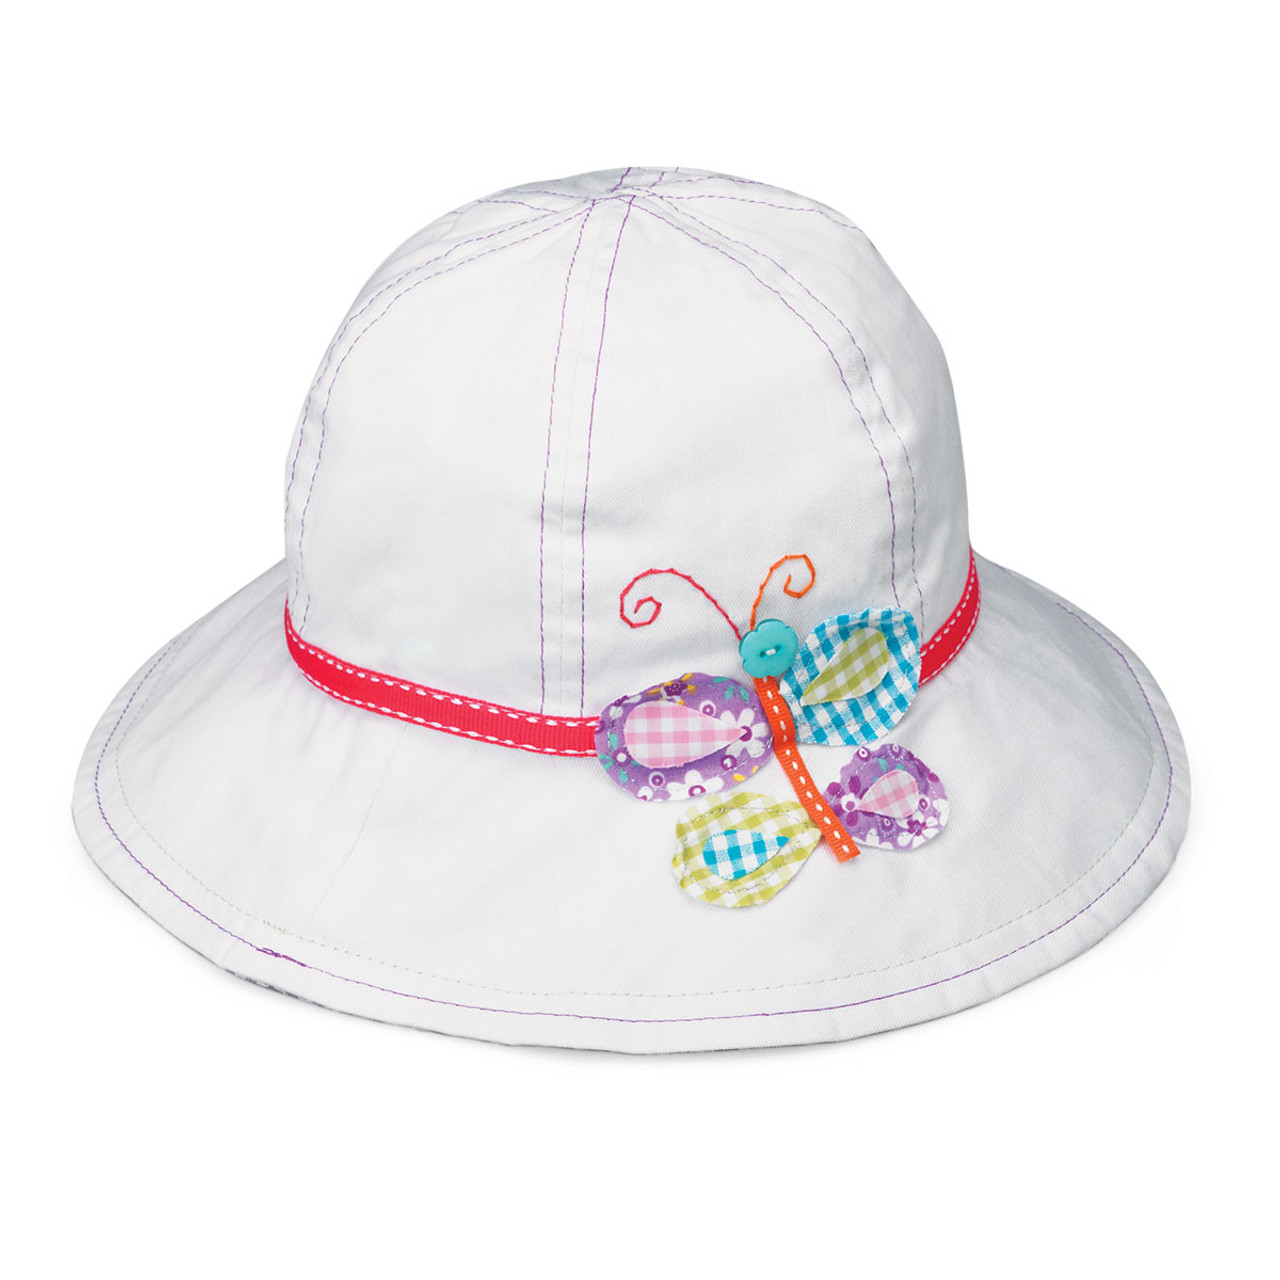 Kids Summer 100/% Cotton Sun Protection Adventure Togs Bucket Sun Hat with Chin Strap Baby